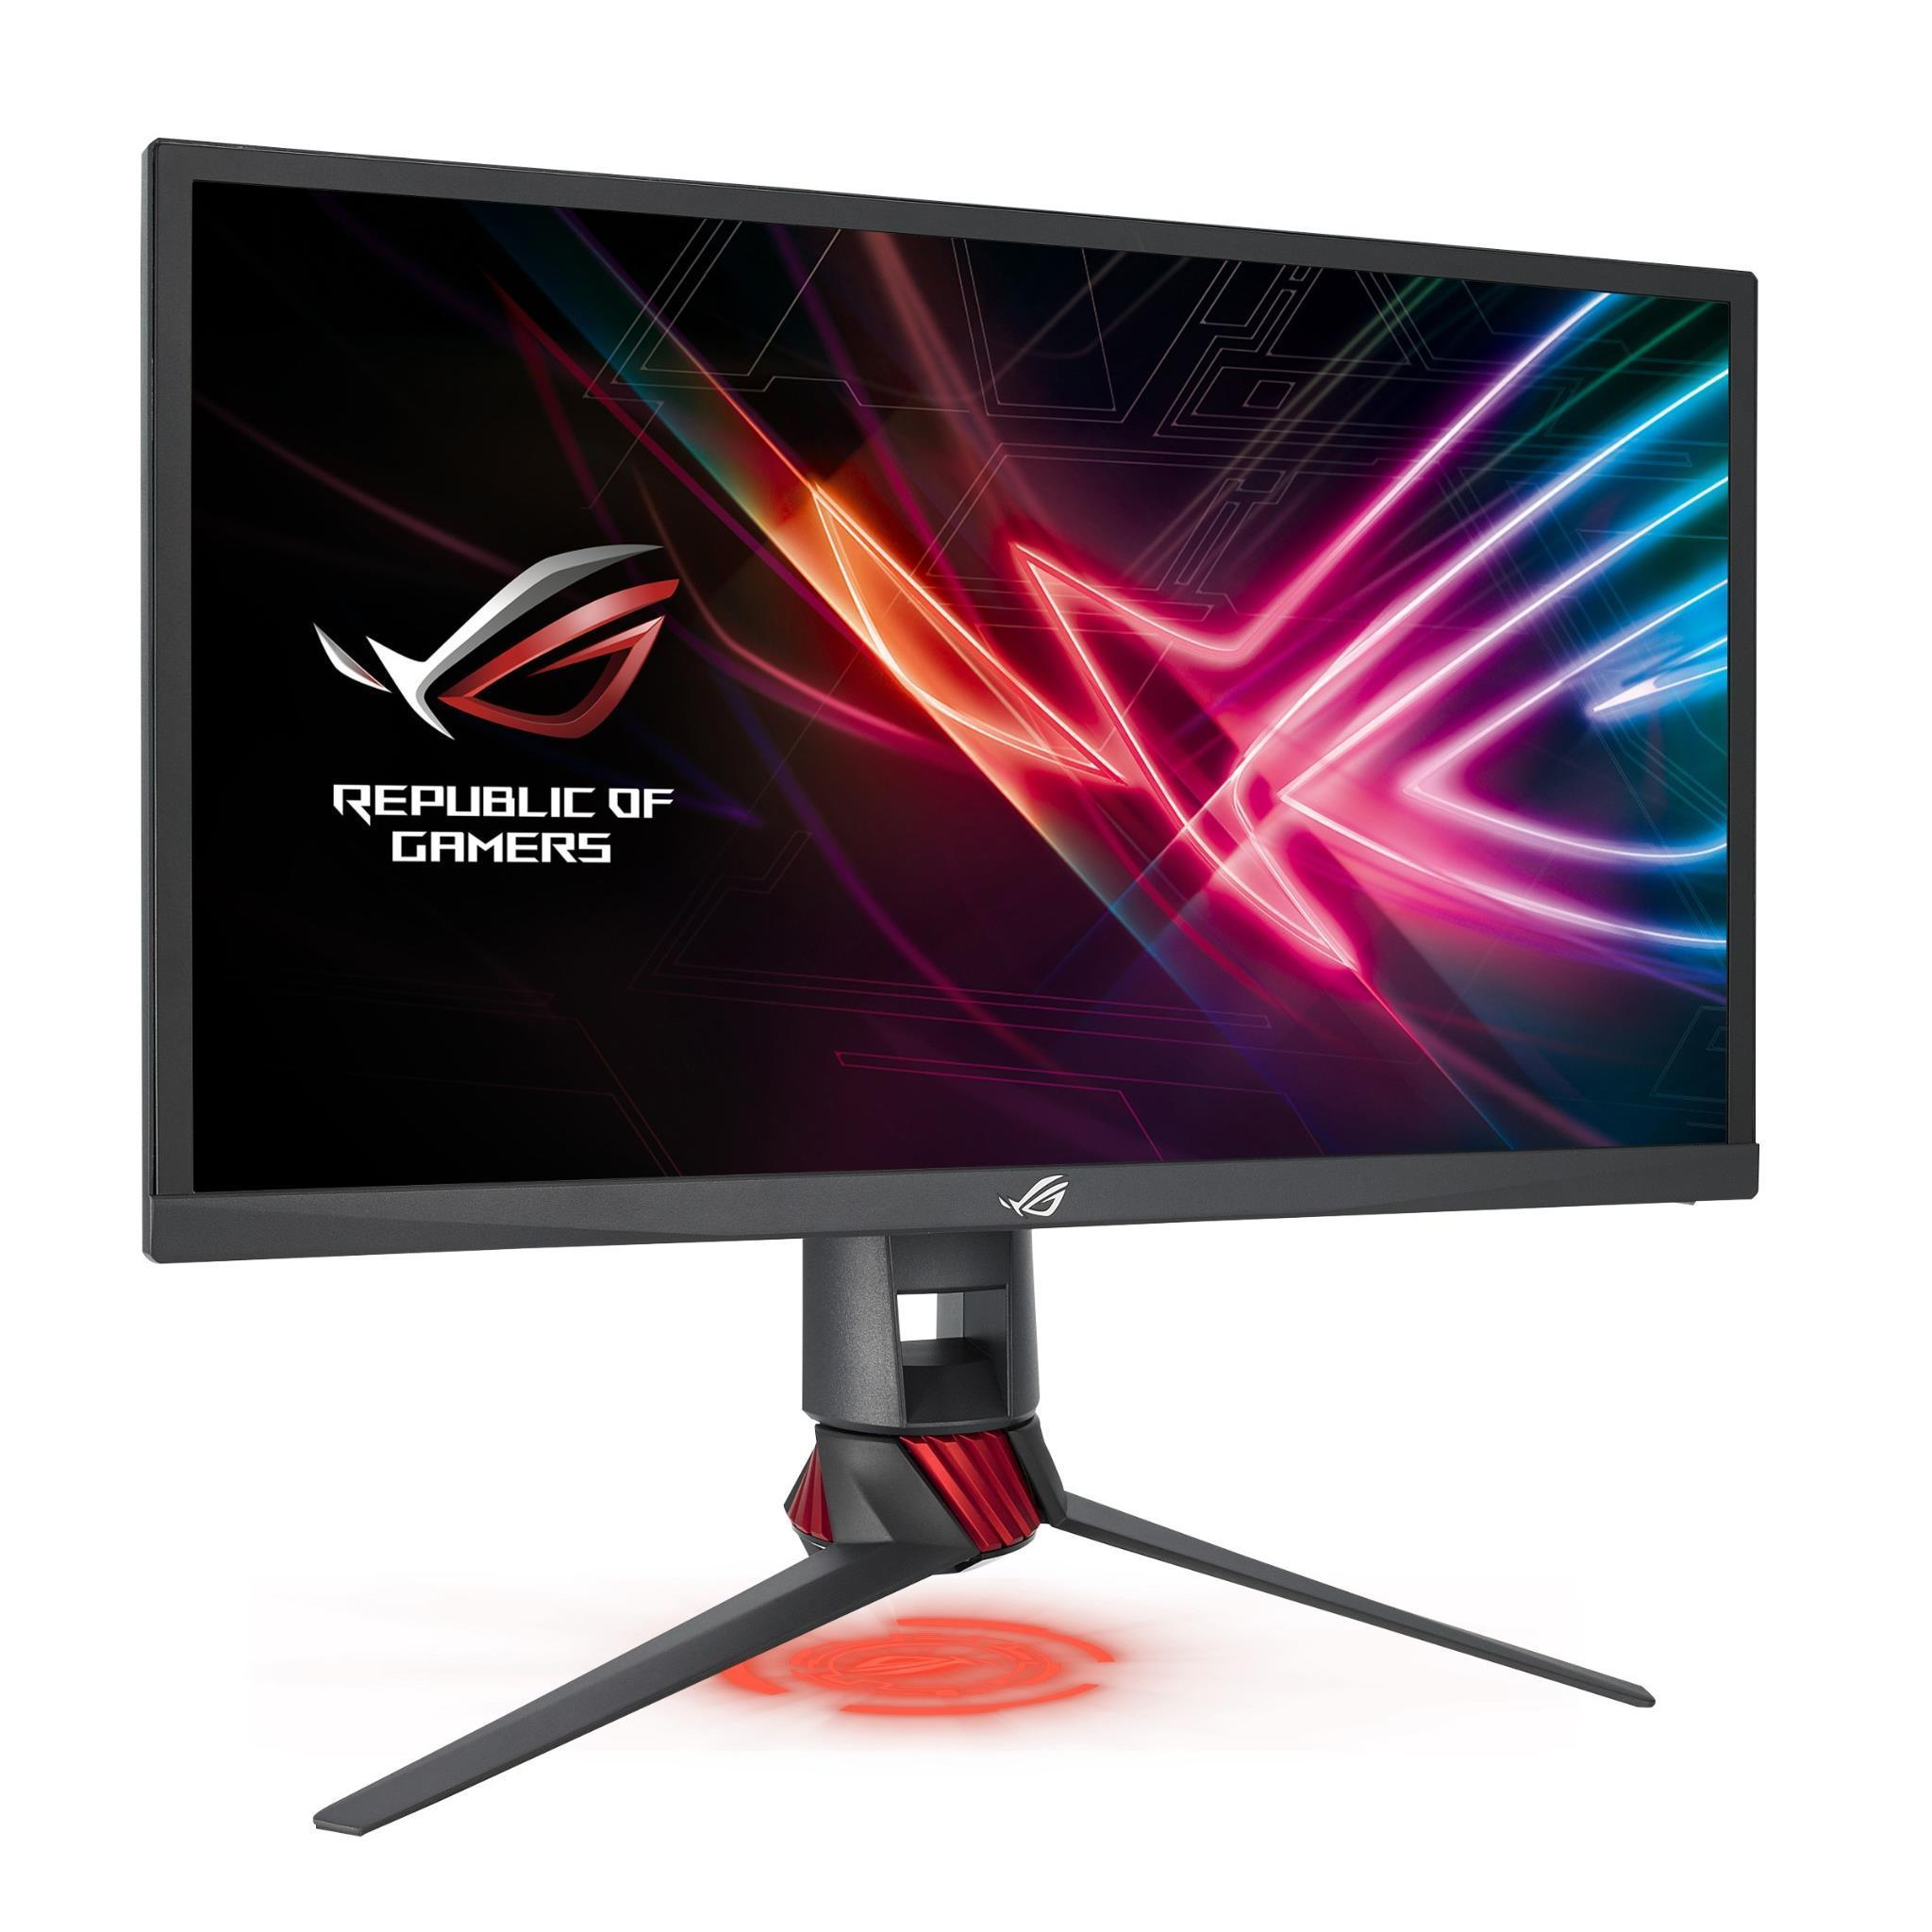 ASUS ROG Strix XG248Q Full HD 240Hz Gaming Monitor